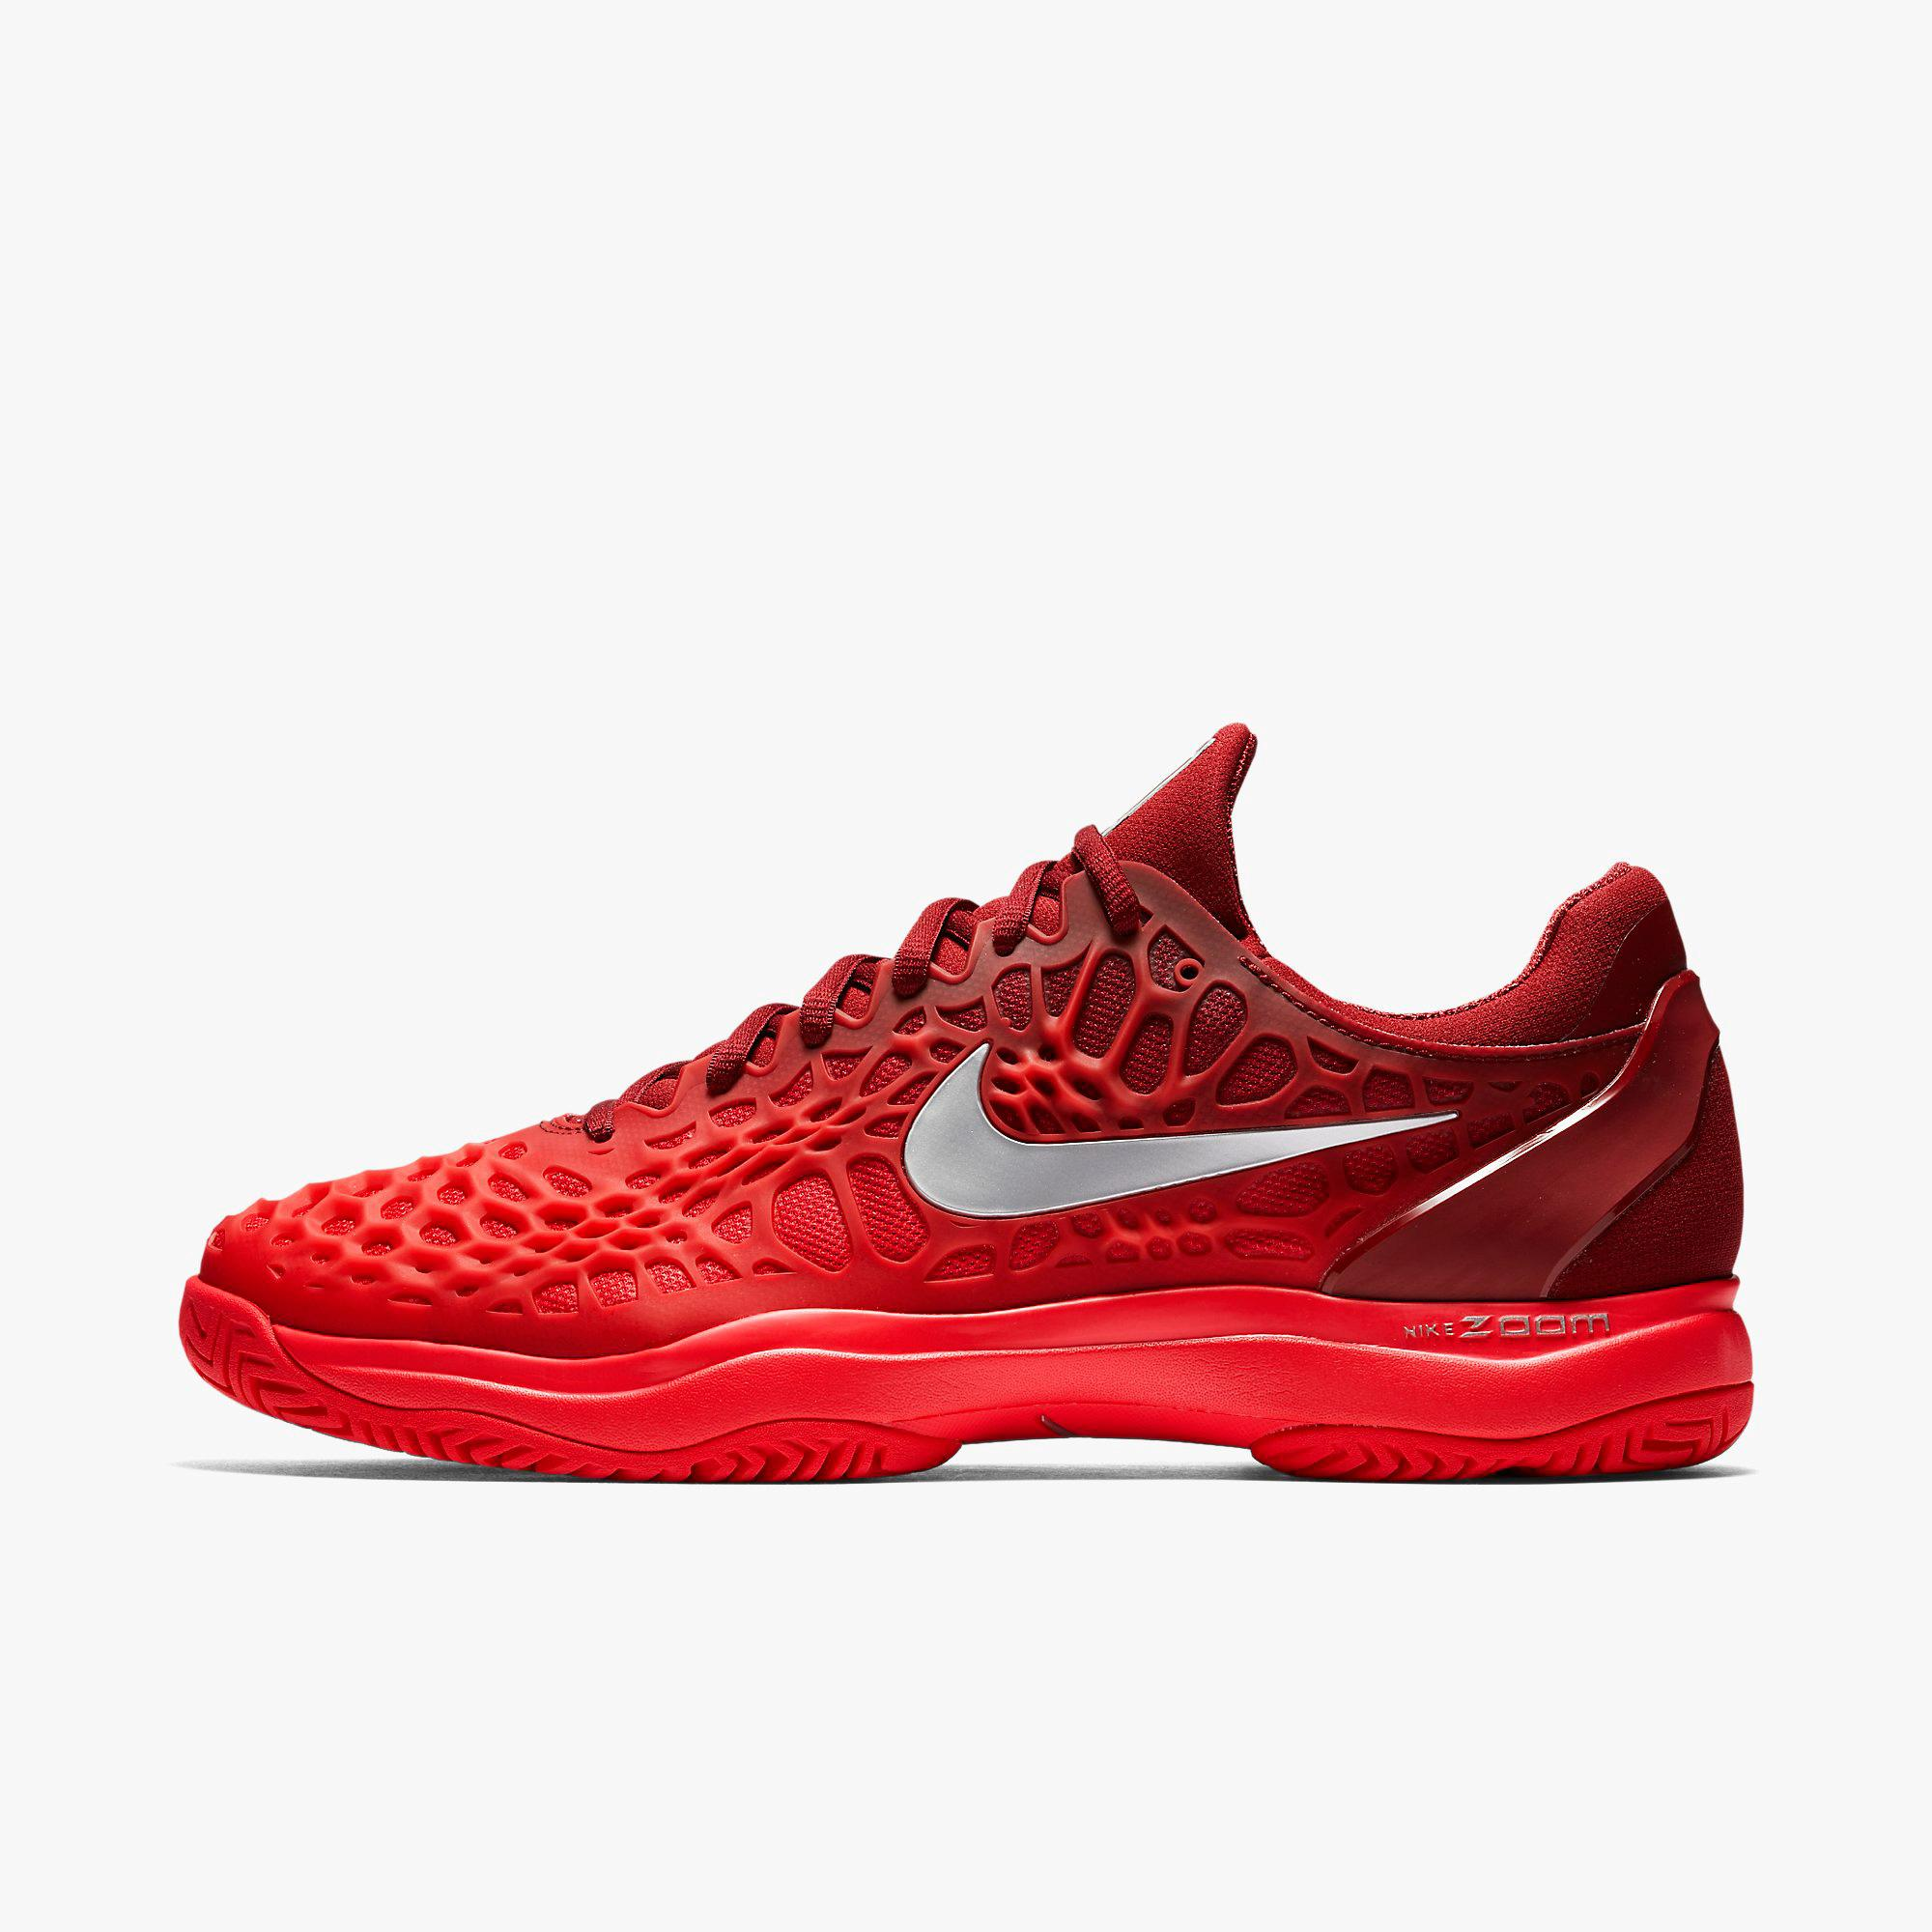 3b5fe62824a34 Nike Mens Zoom Cage 3 Tennis Shoes - Team Red Siren Red - Tennisnuts.com